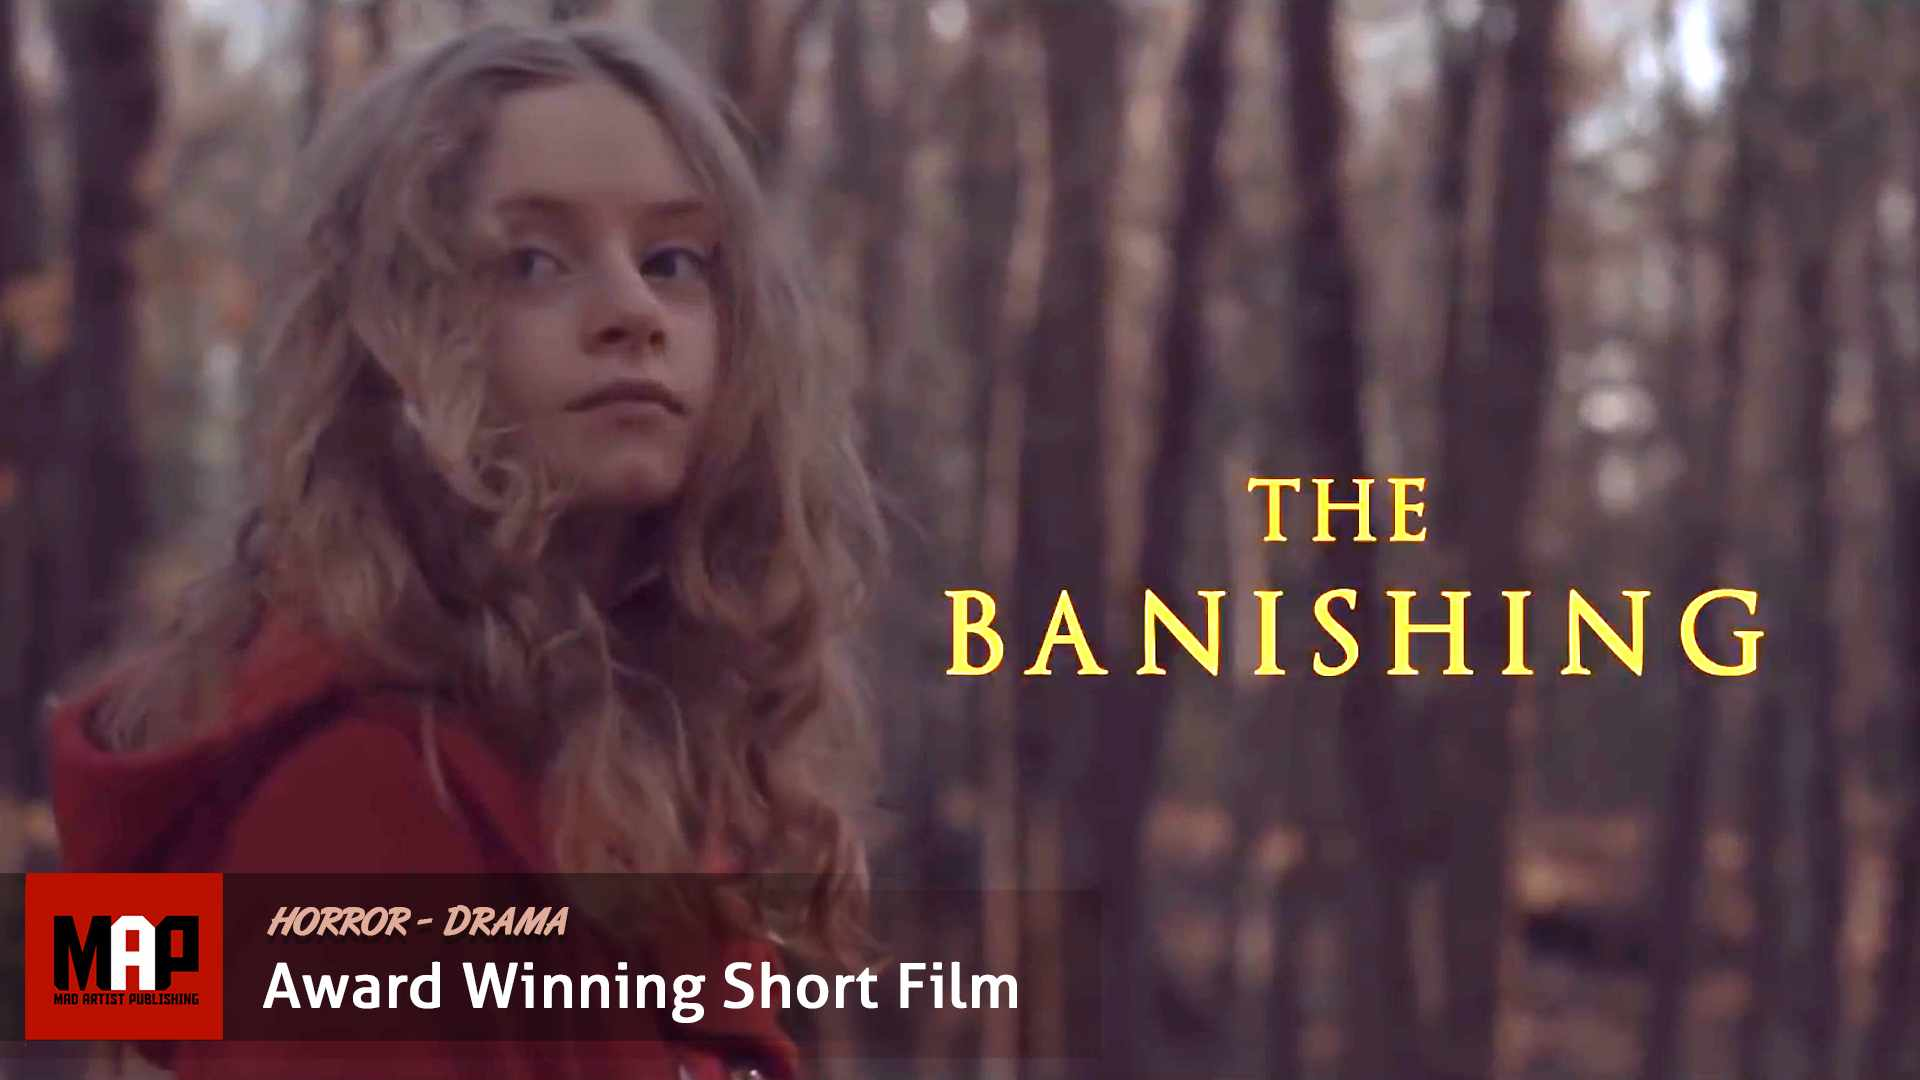 Horror Short Film ** THE BANISHING **  Award Winning Movie By Erlingur Óttar Thoroddsen